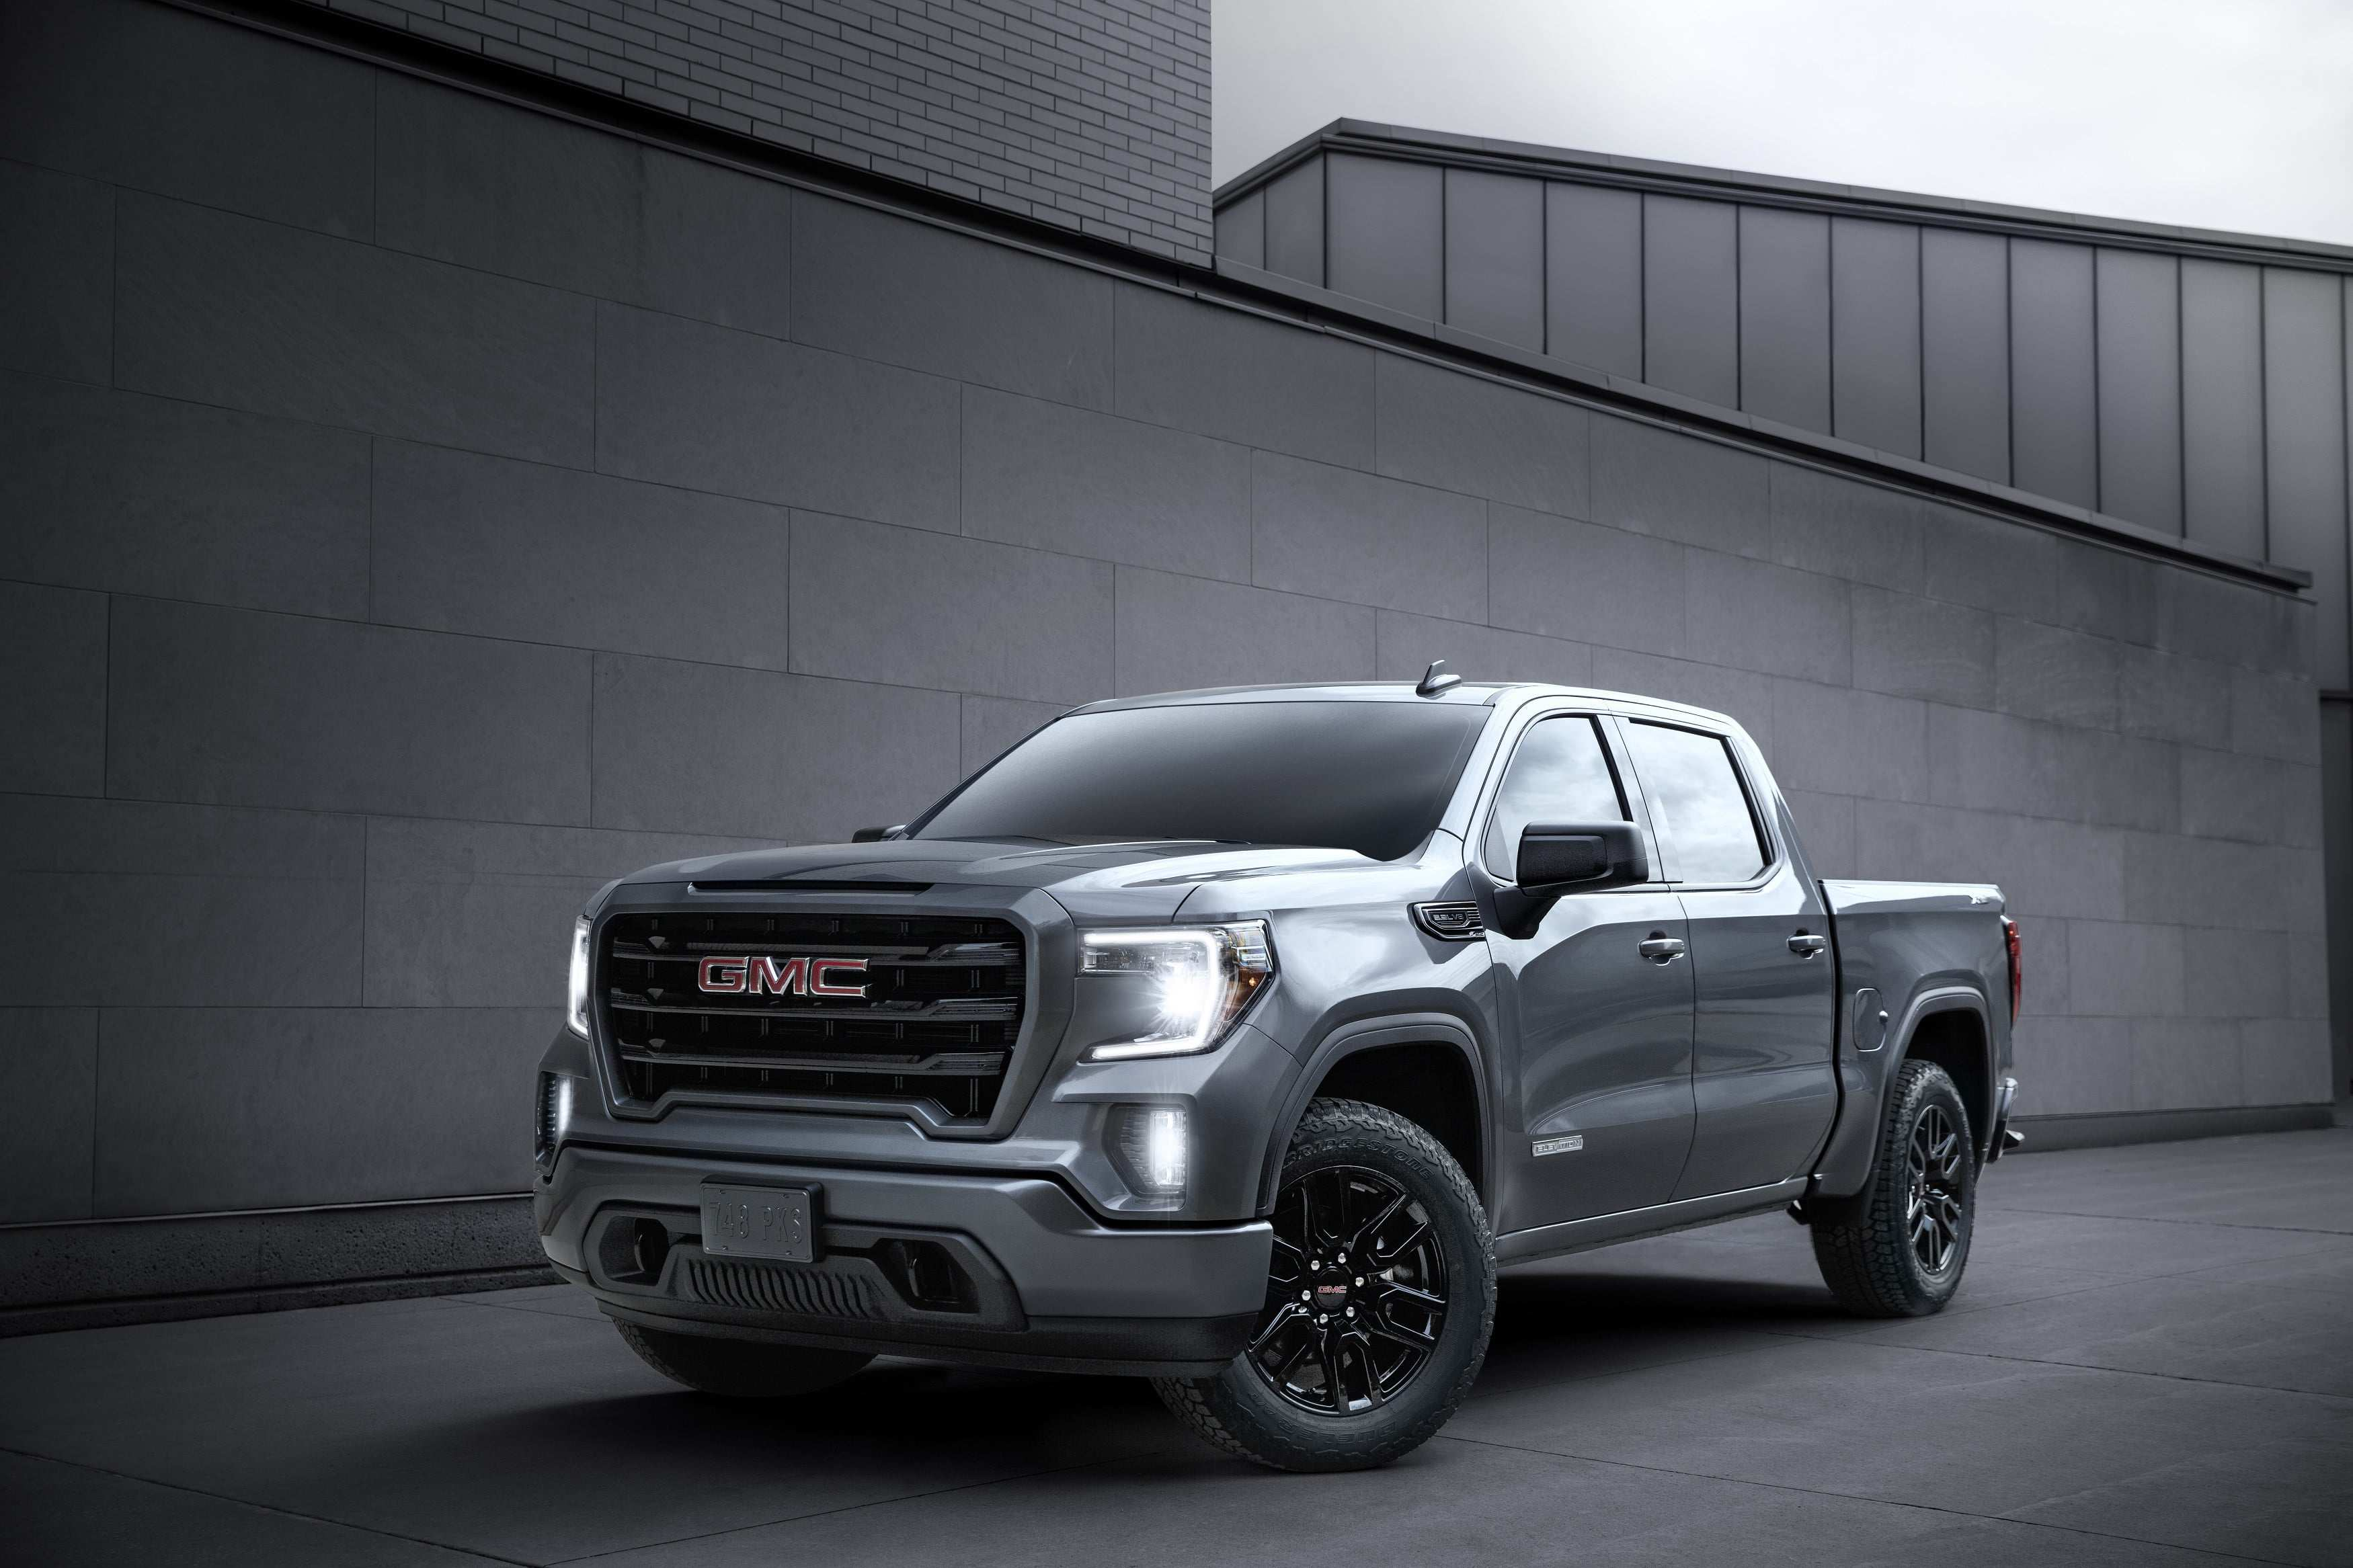 87 Best Review 2020 Gmc Sierra Engines Photos by 2020 Gmc Sierra Engines